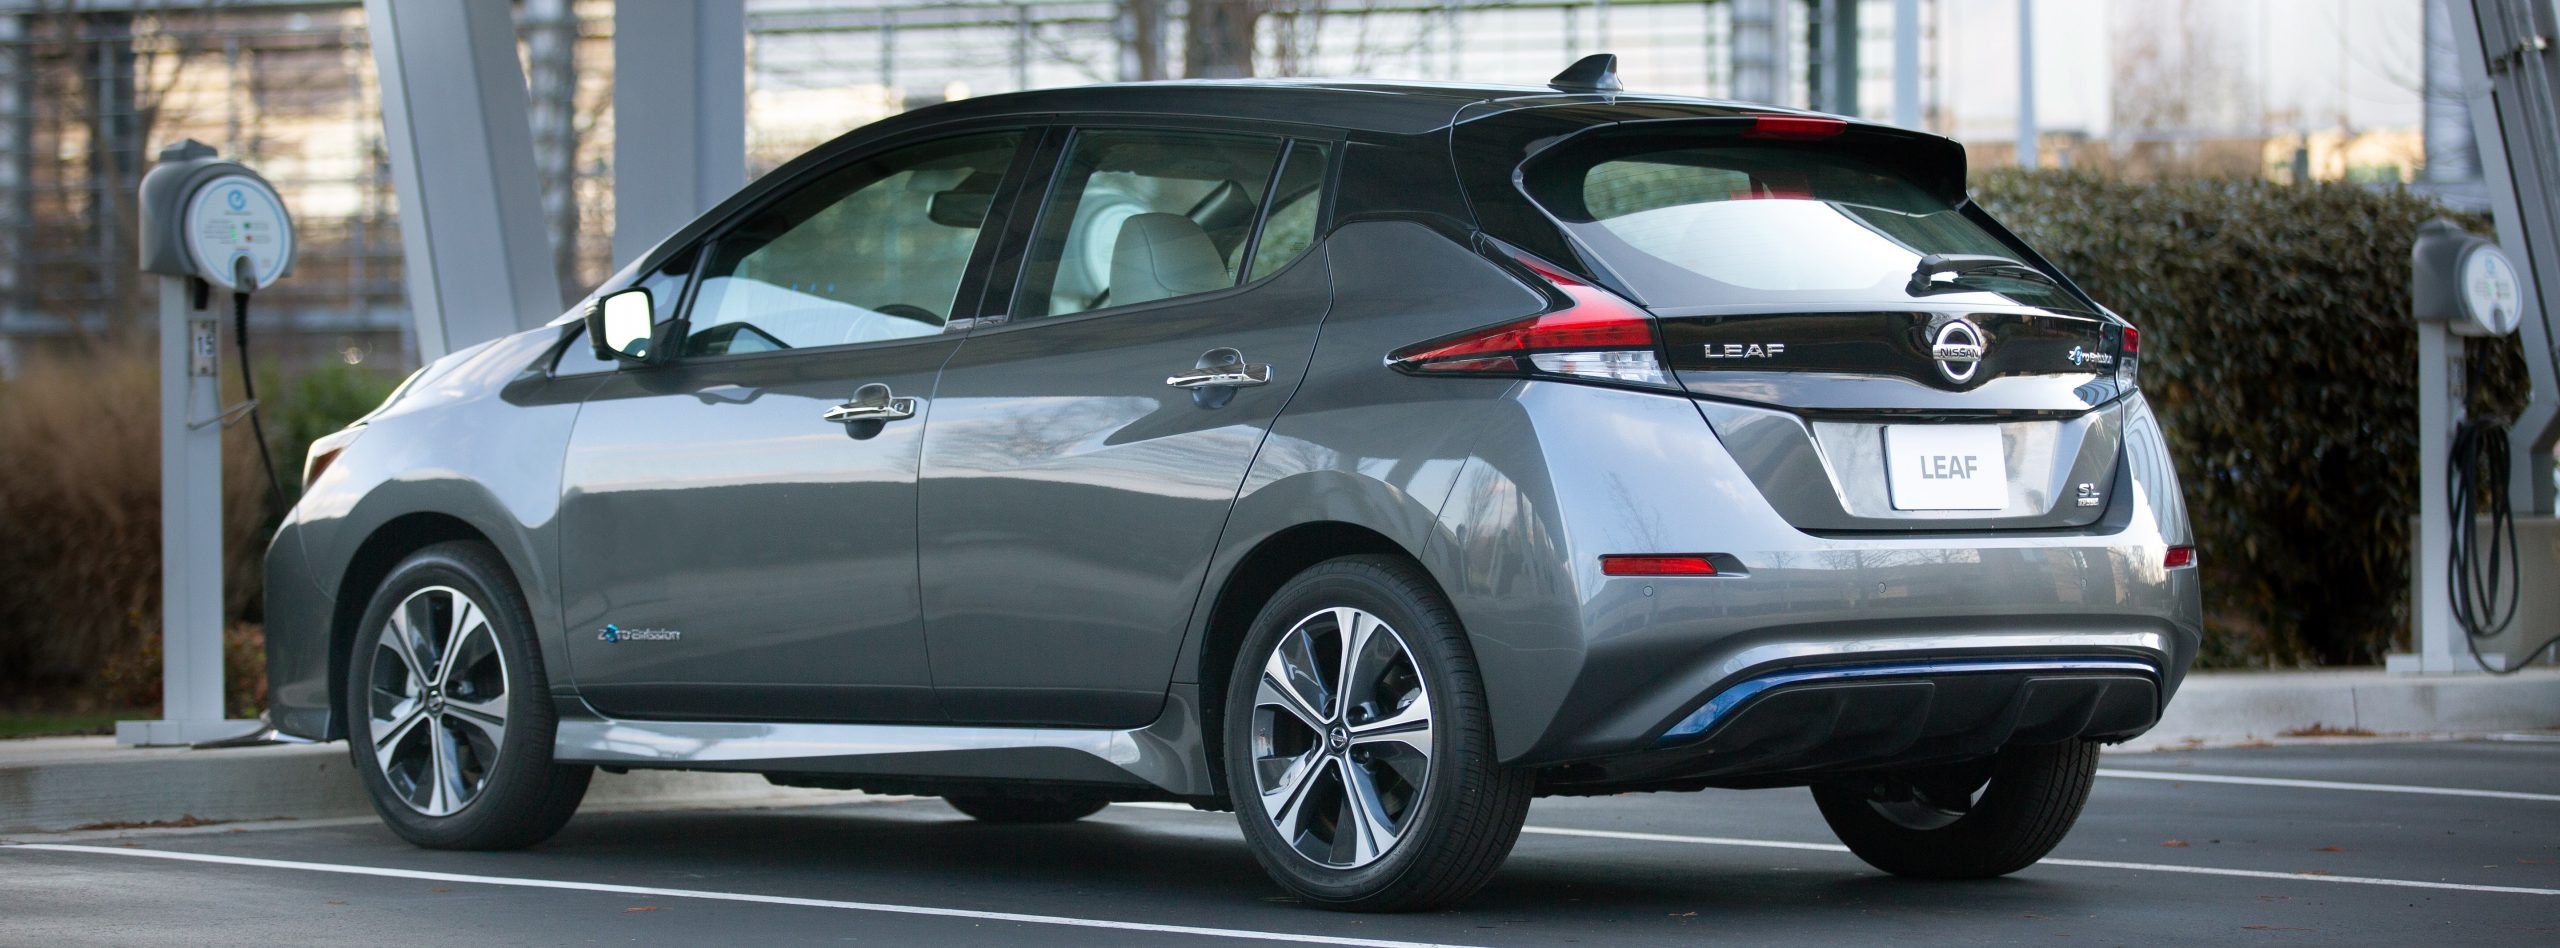 Nissan LEAF Harlingen